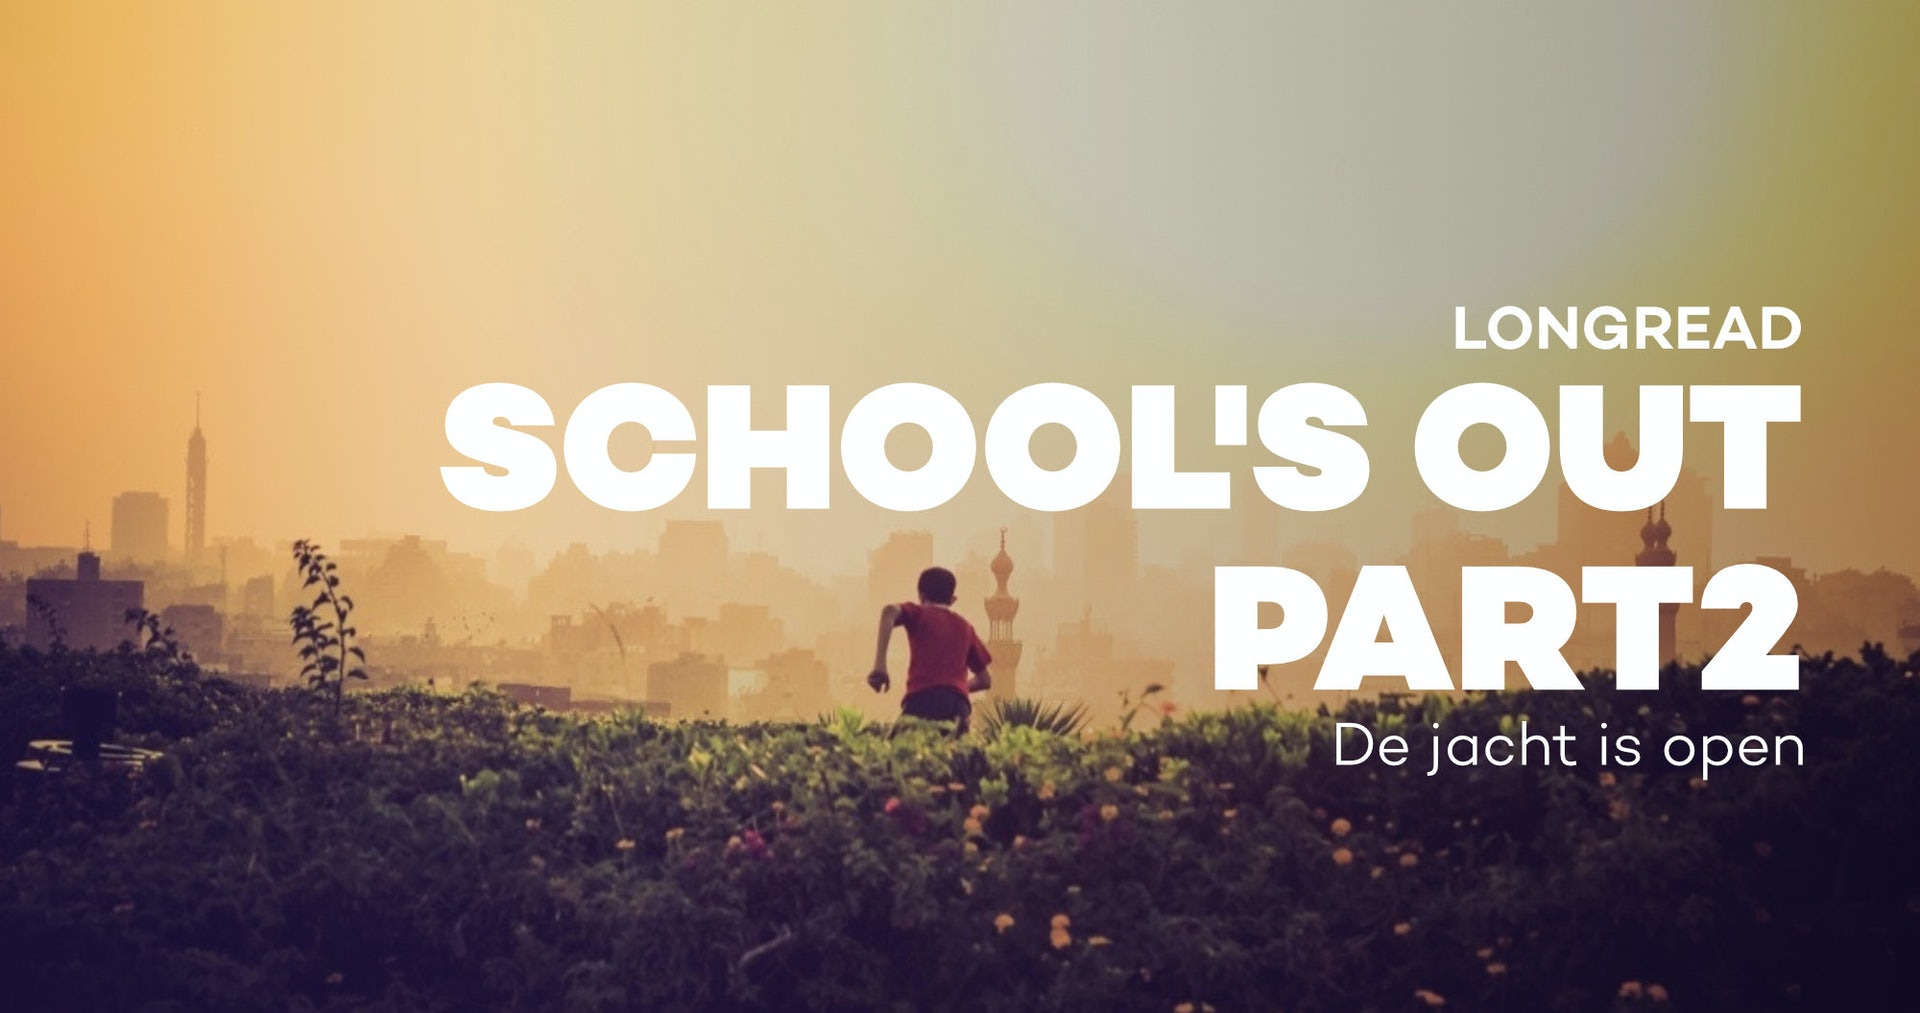 School's Out Part 2, de jacht is open